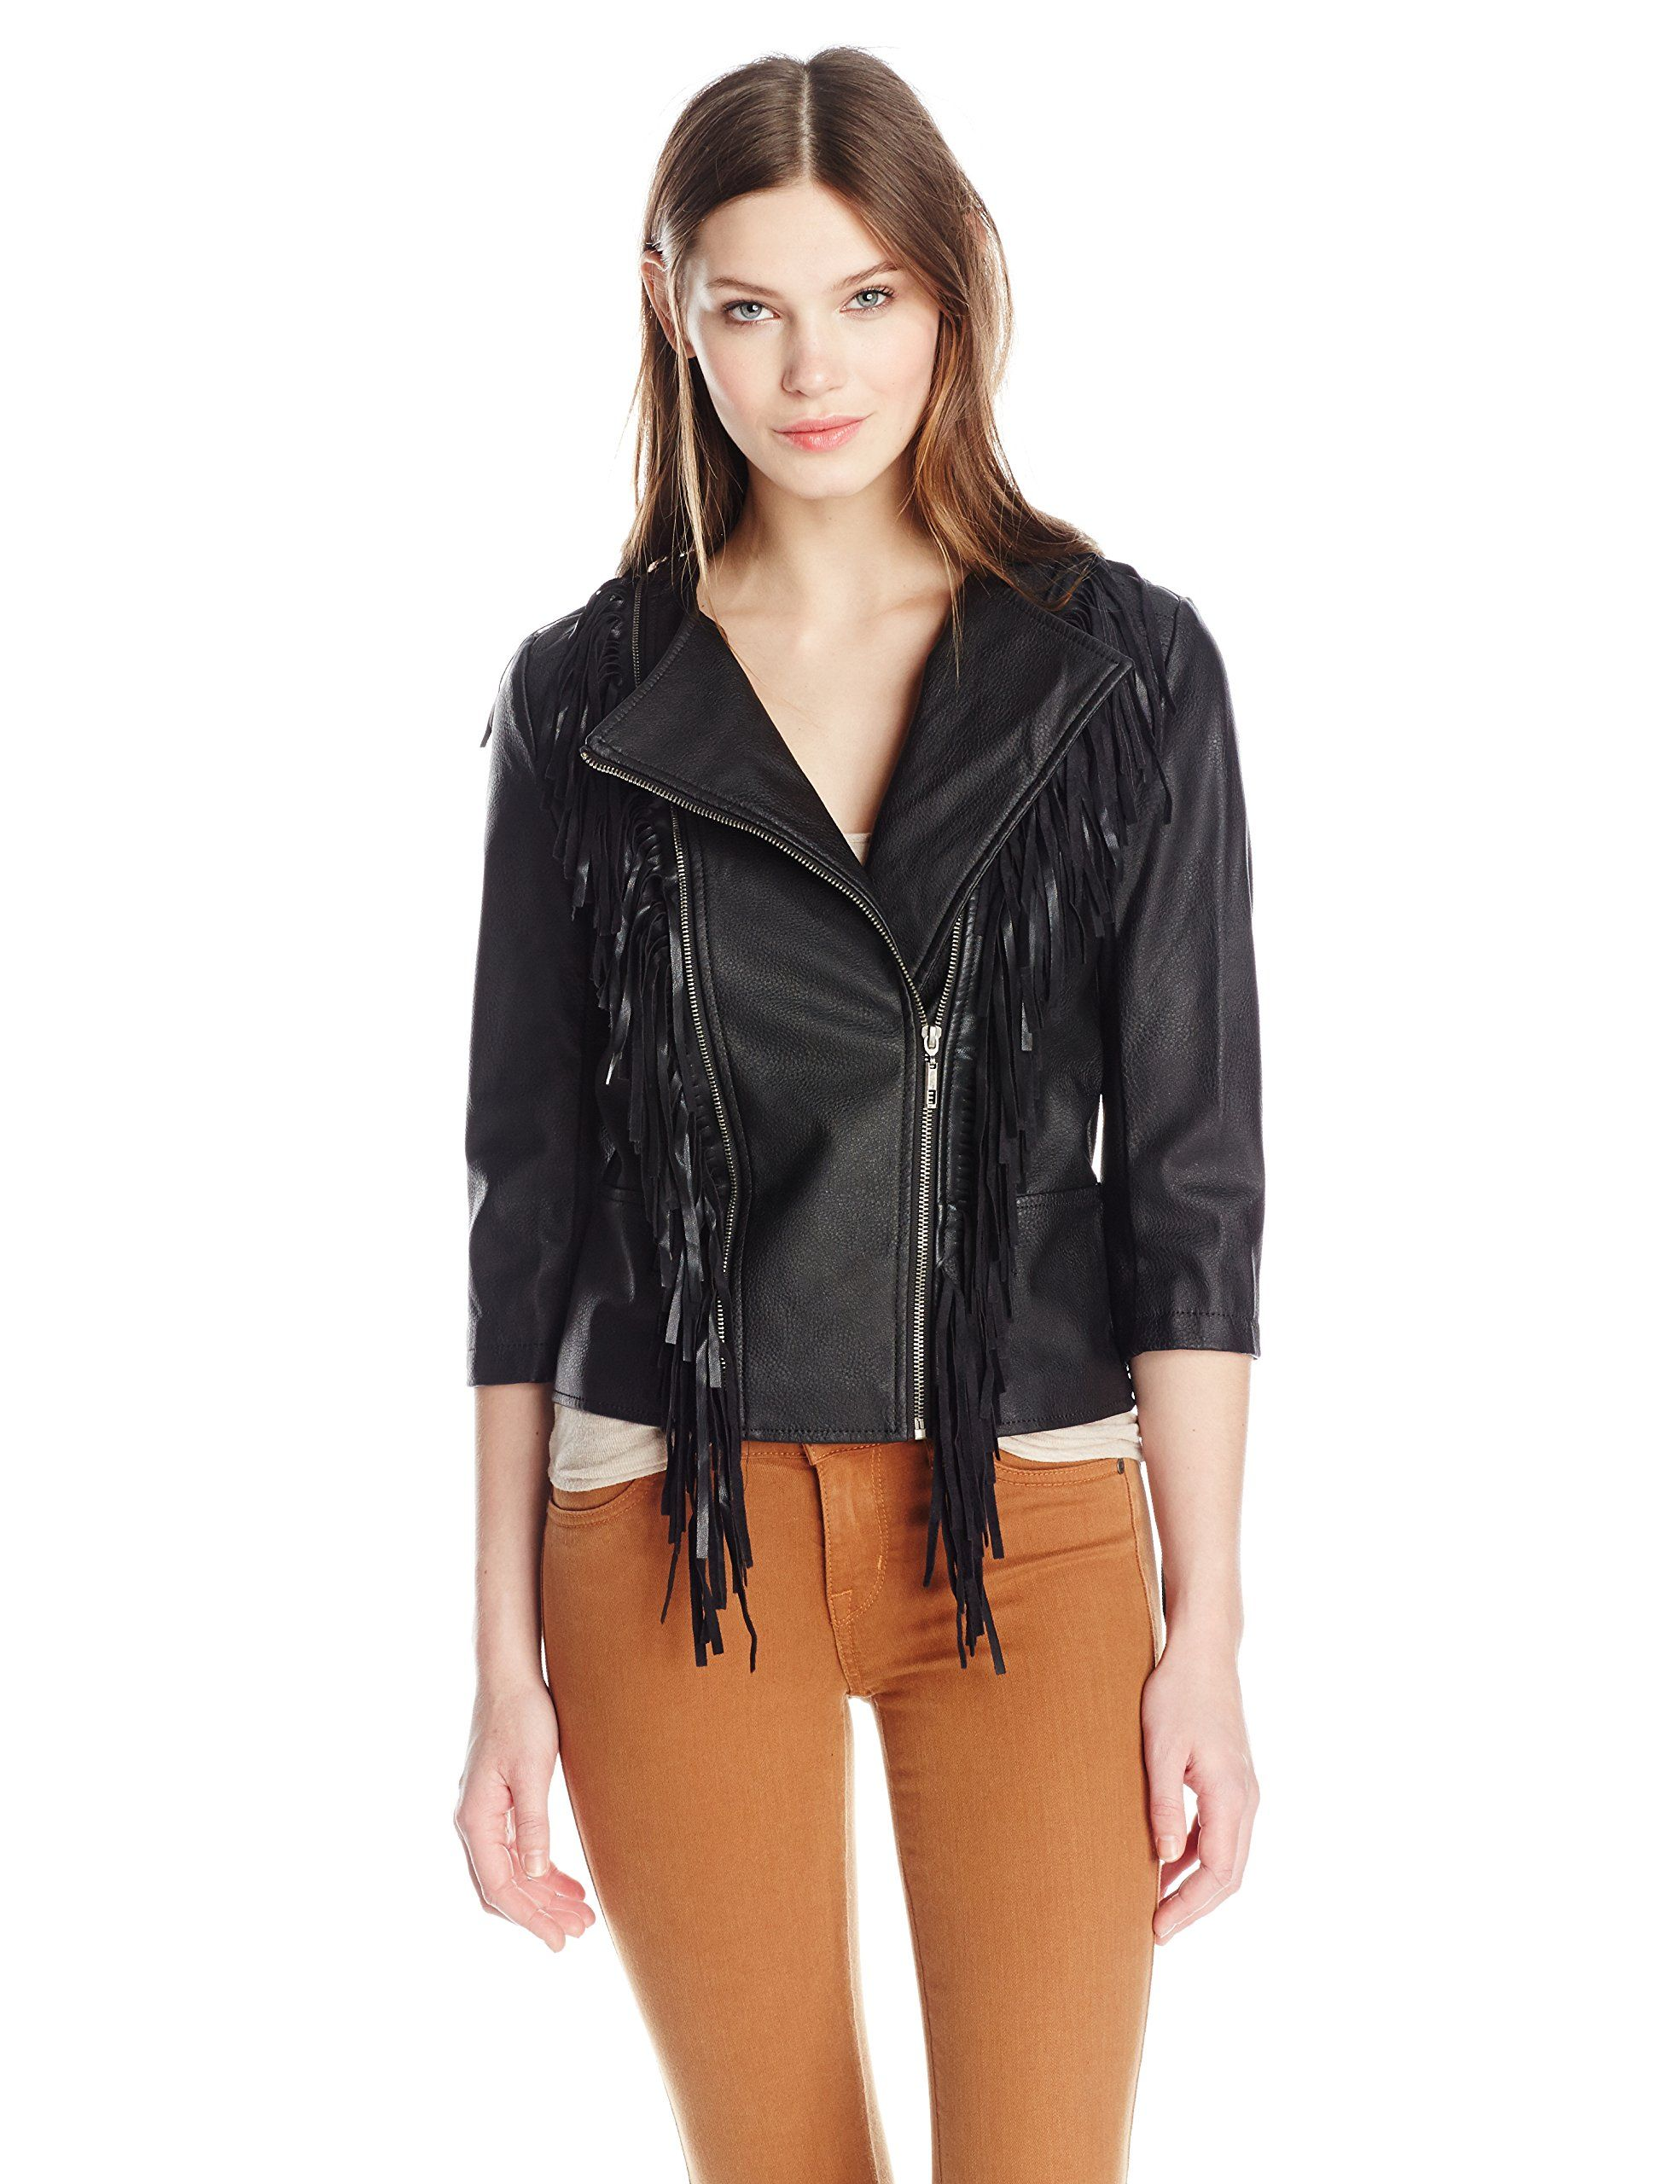 Glamorous Women's Fringe Detail Faux Leather Jacket, Black